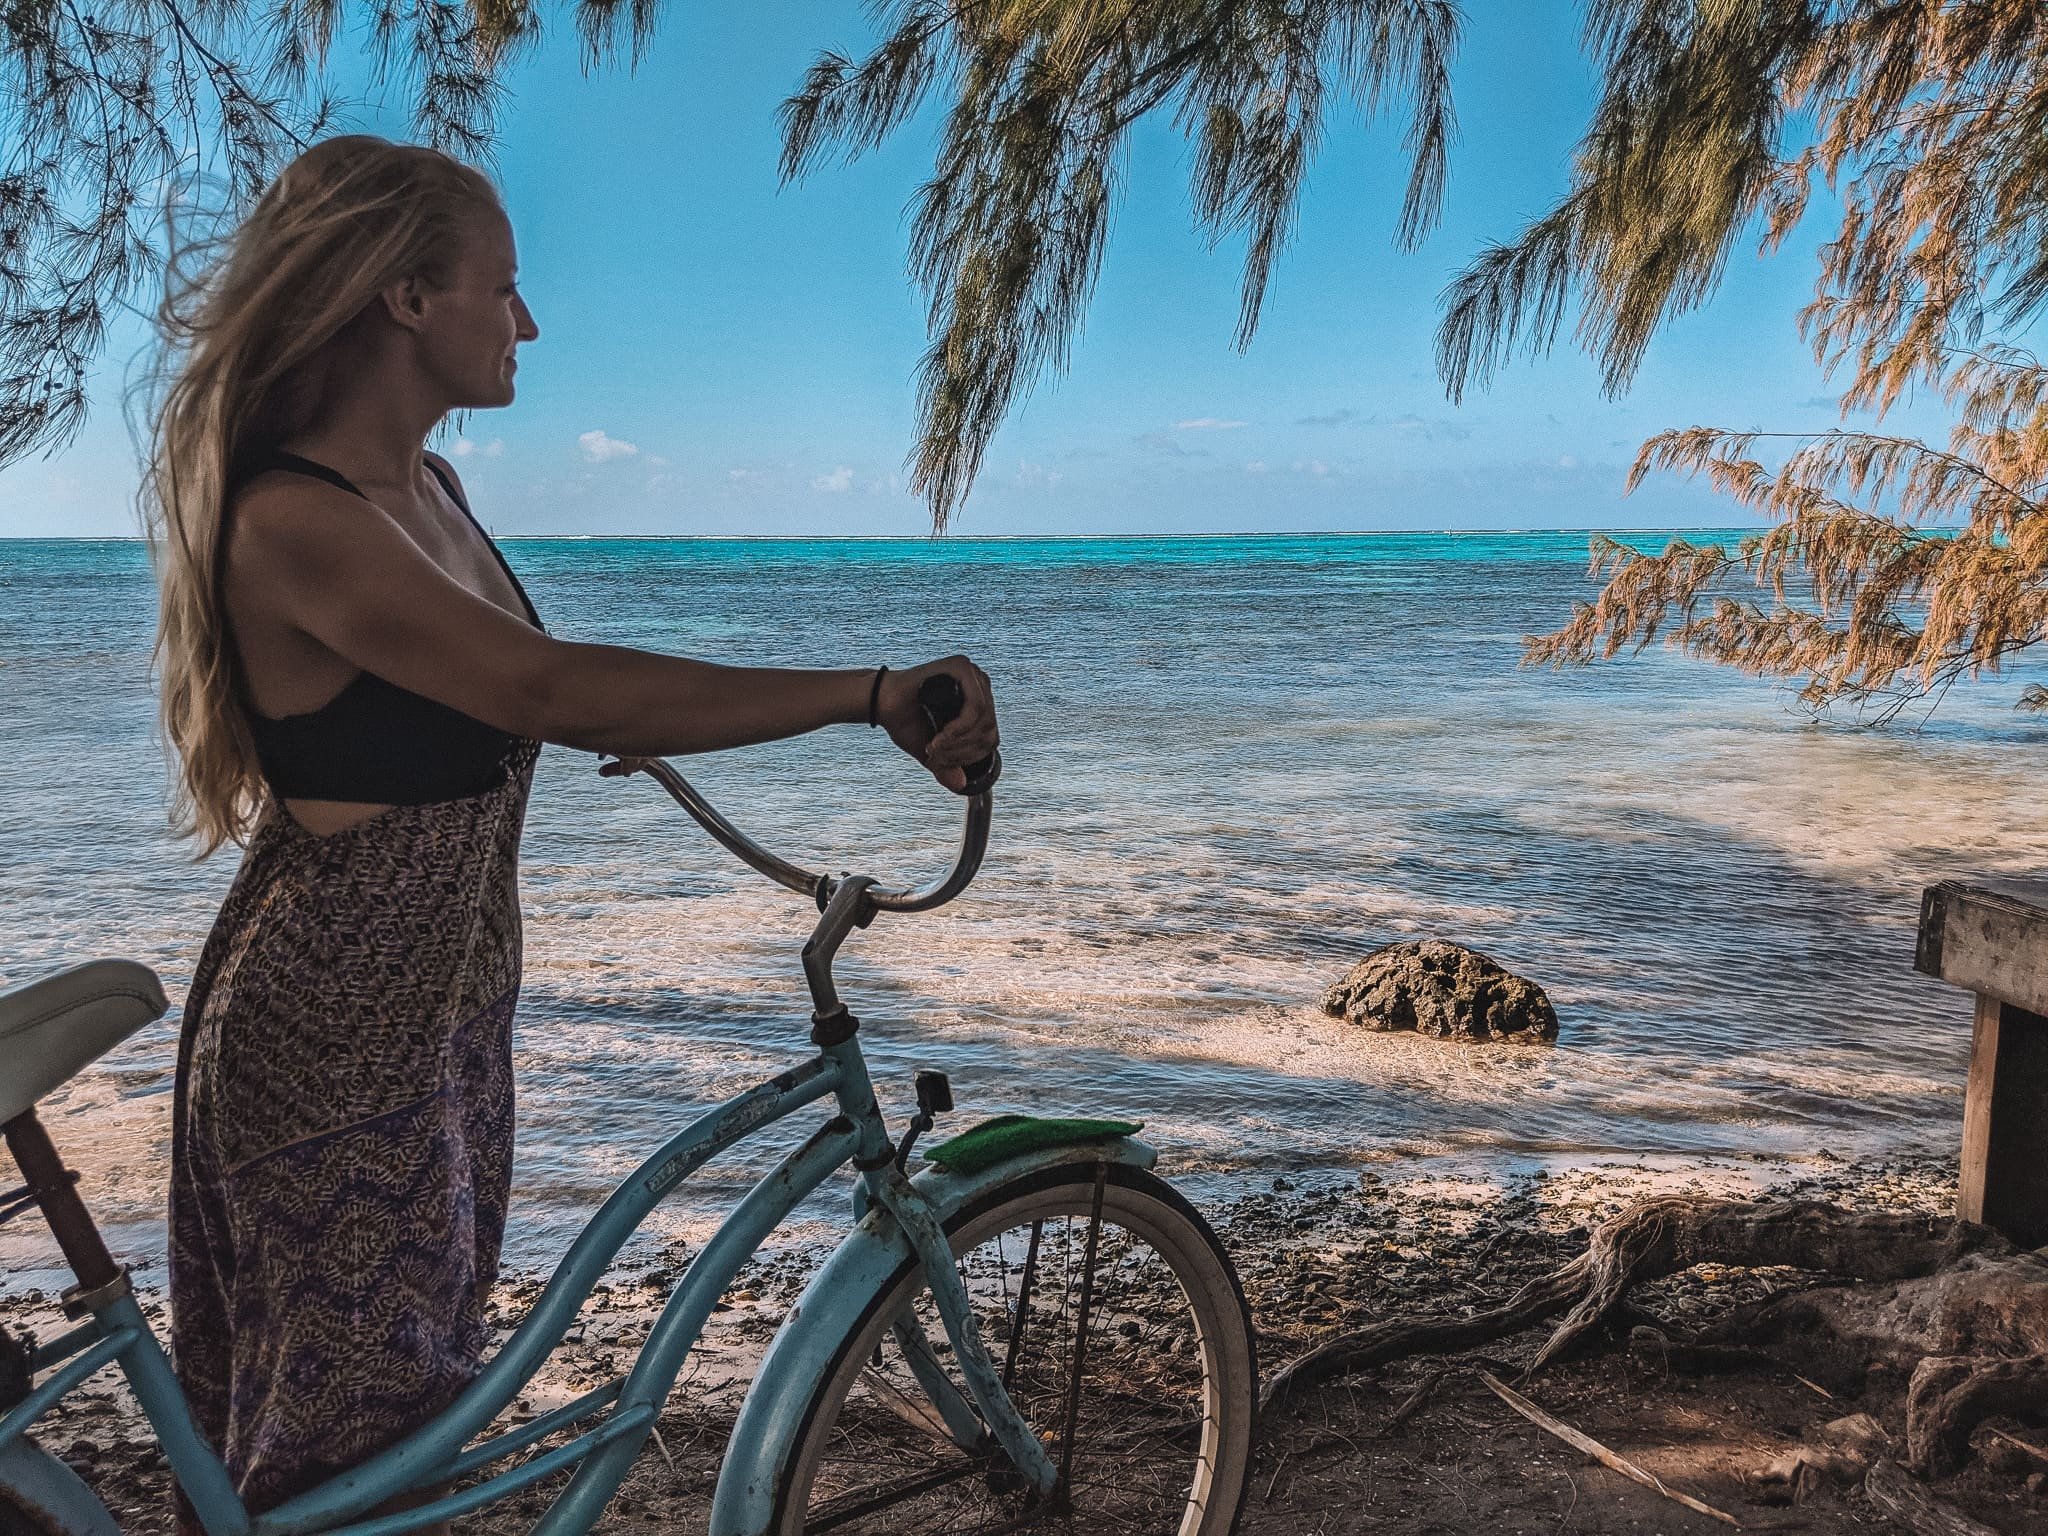 Standing With A Bike Gazing Out At The Ocean In French Polynesia.